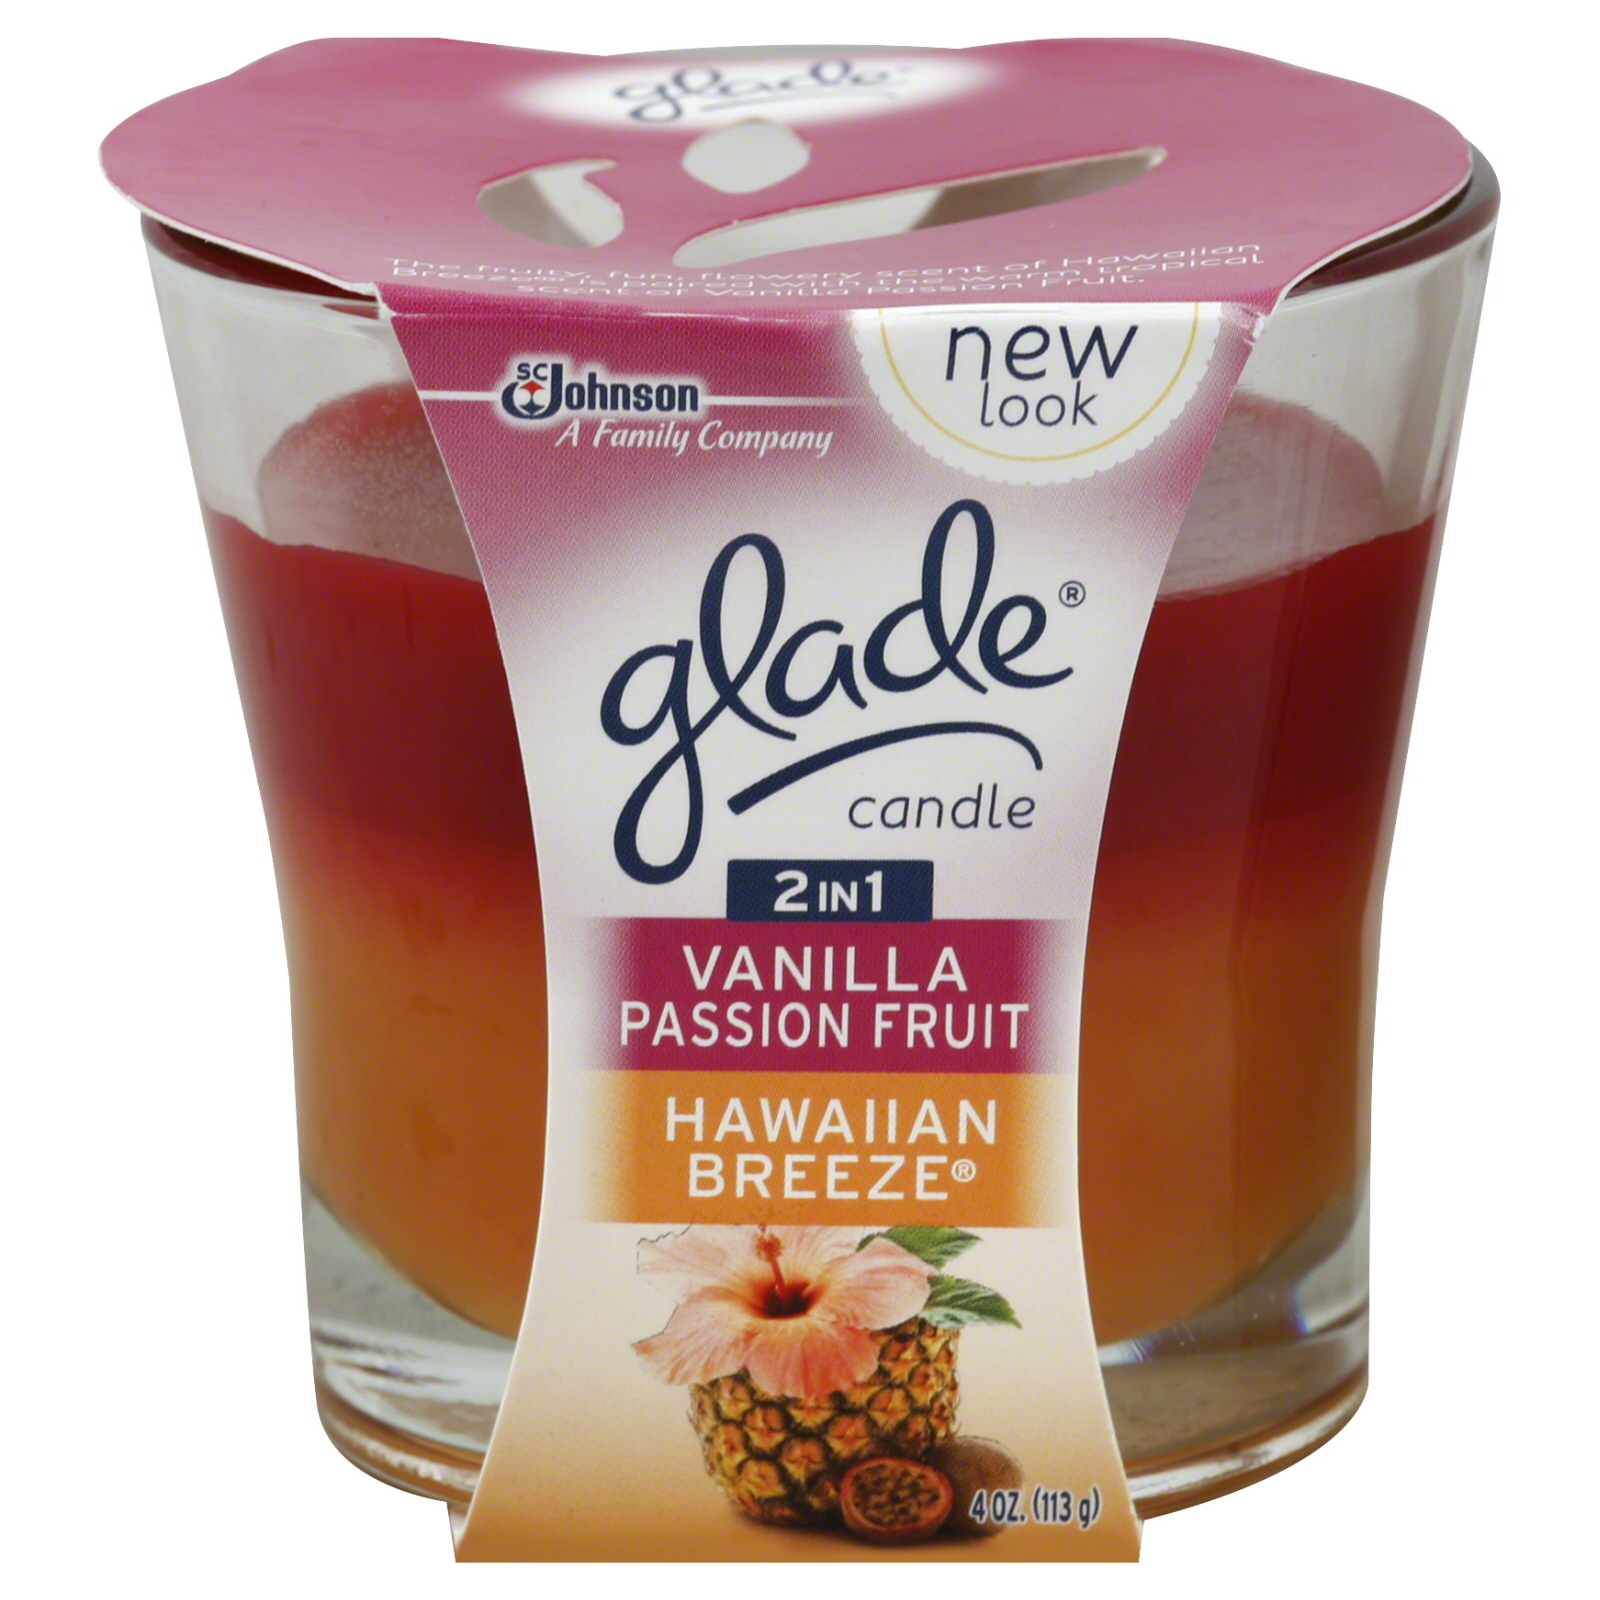 Glade 2 In1 Candle Hawaiian Breeze Vanilla Passion Fruit